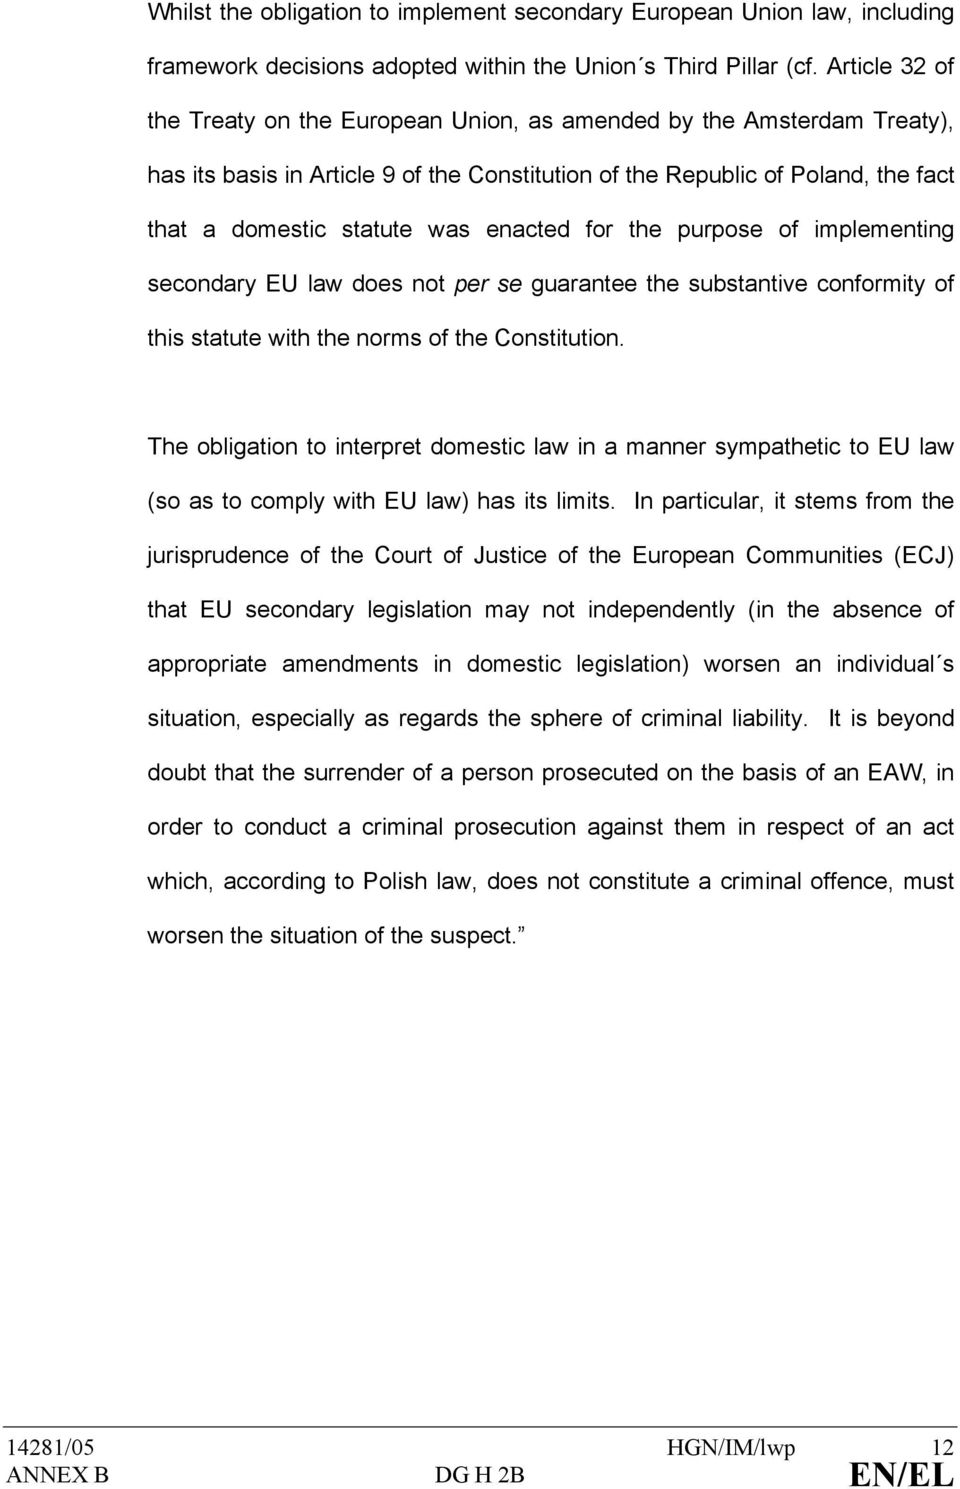 enacted for the purpose of implementing secondary EU law does not per se guarantee the substantive conformity of this statute with the norms of the Constitution.